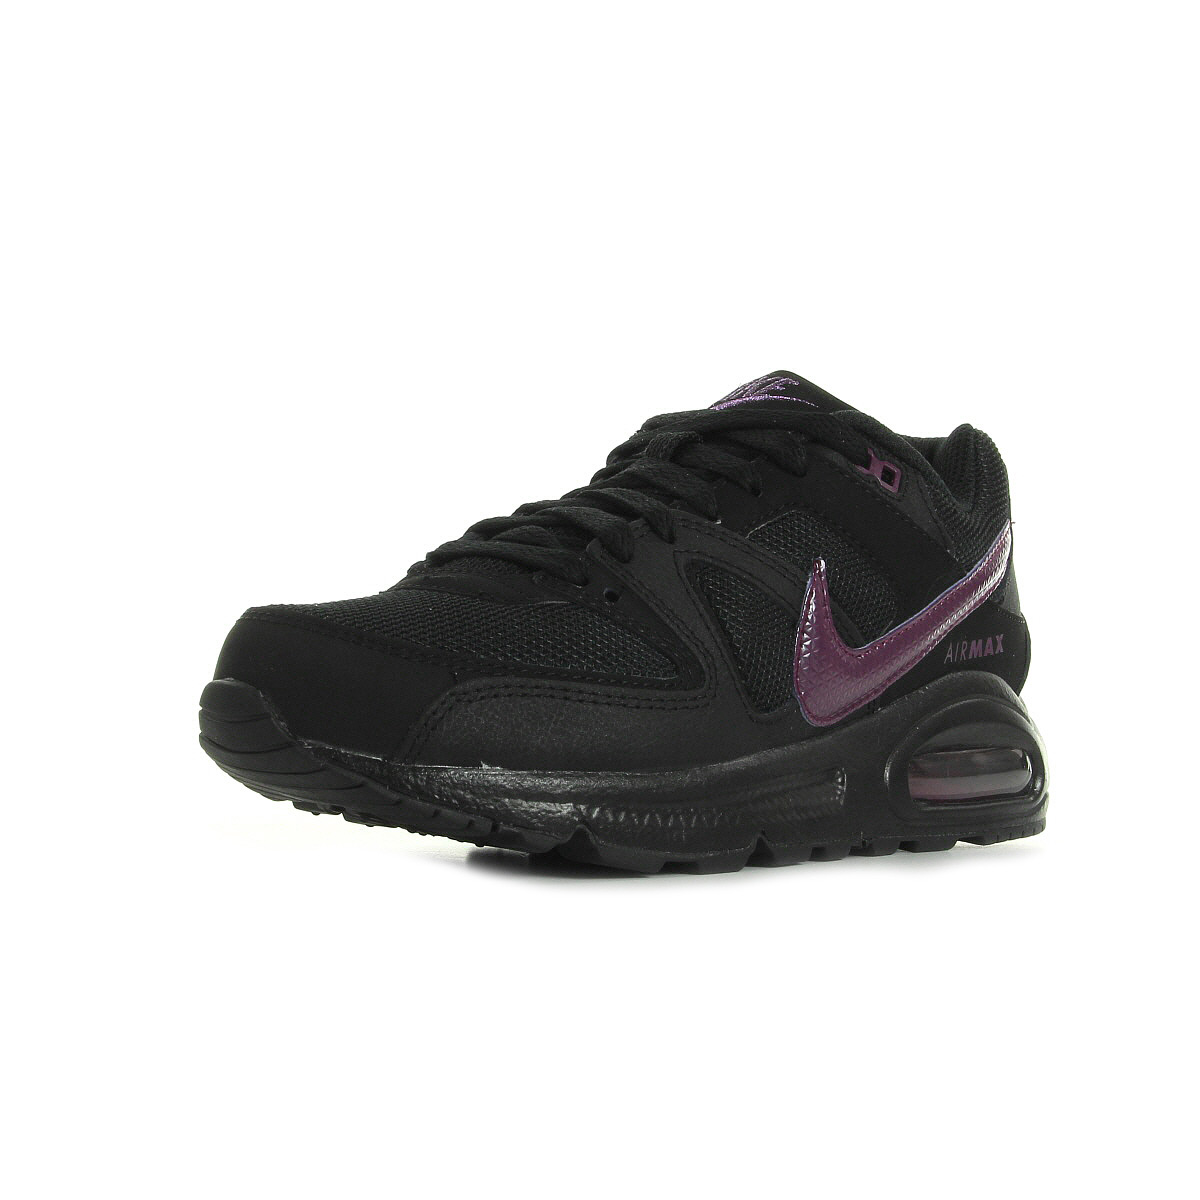 nike dunks rétro - Nike Air Max Command 397690056, Baskets mode femme